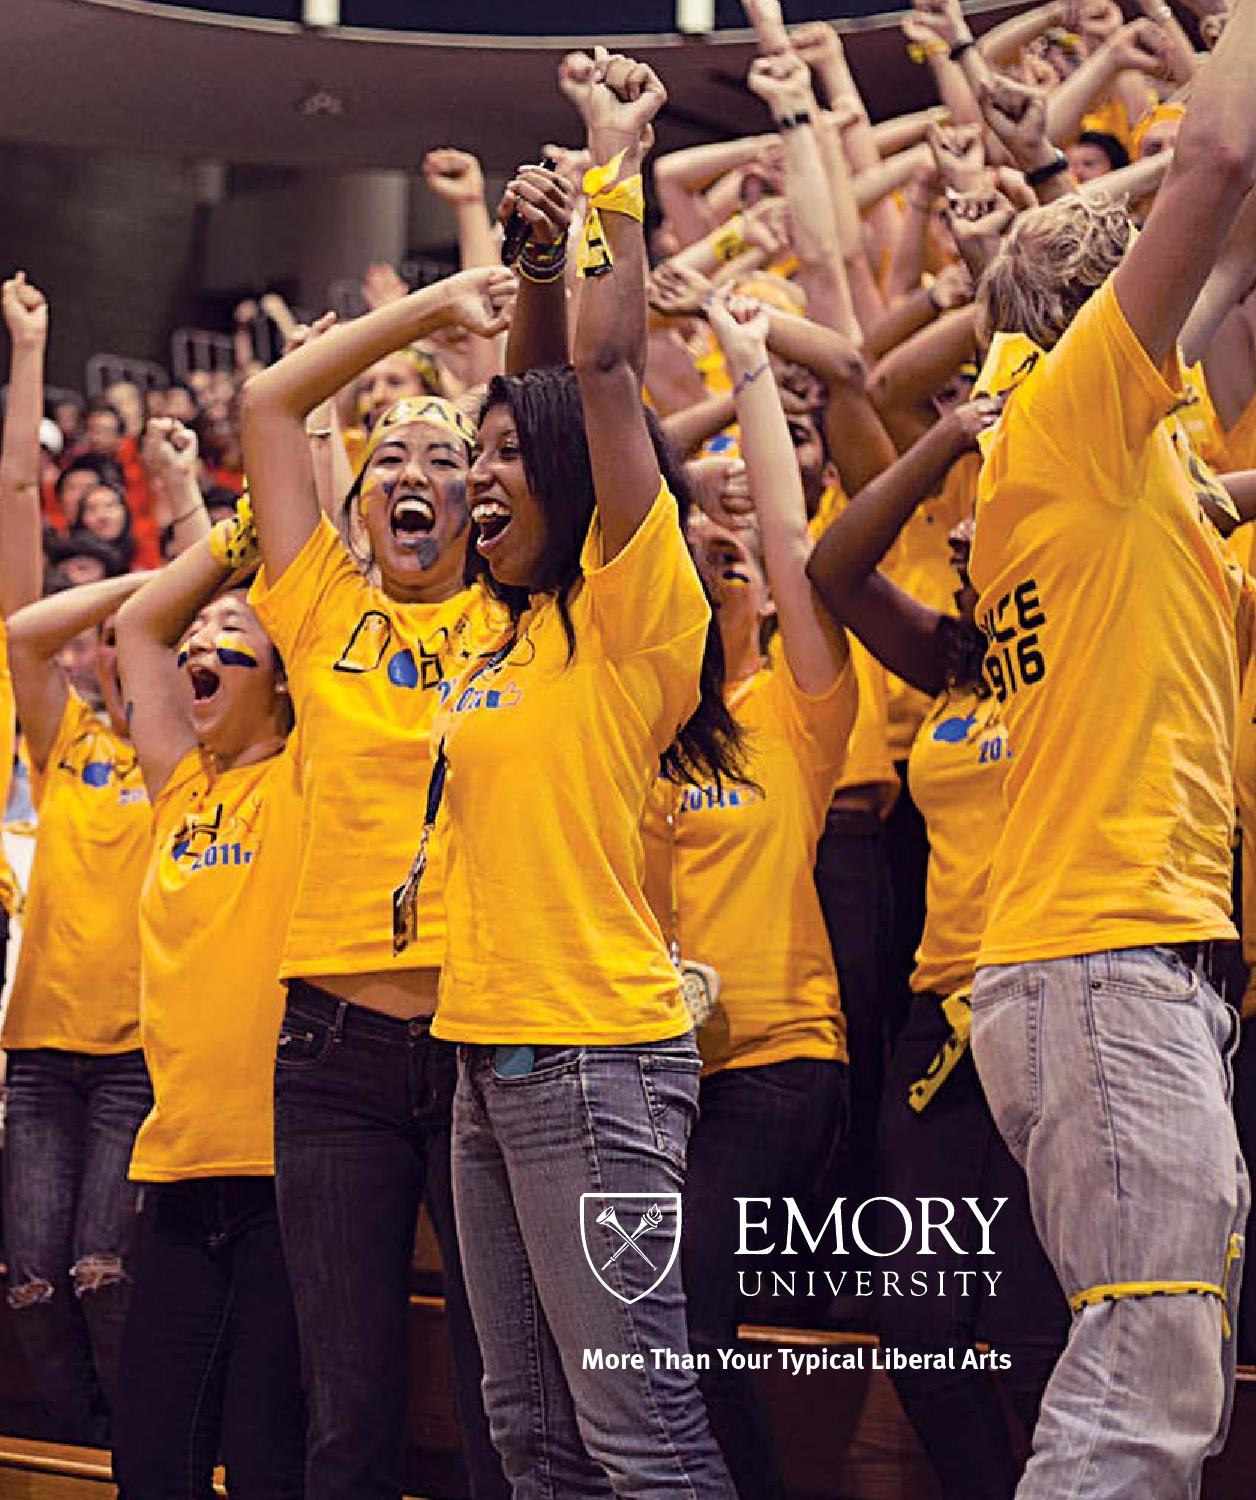 emory university essay prompt The university of notre dame writing supplement consists of one (1) essay response to a required question and two (2) essay responses to questions you select from the options provided in total, you will write three (3) essay responses.